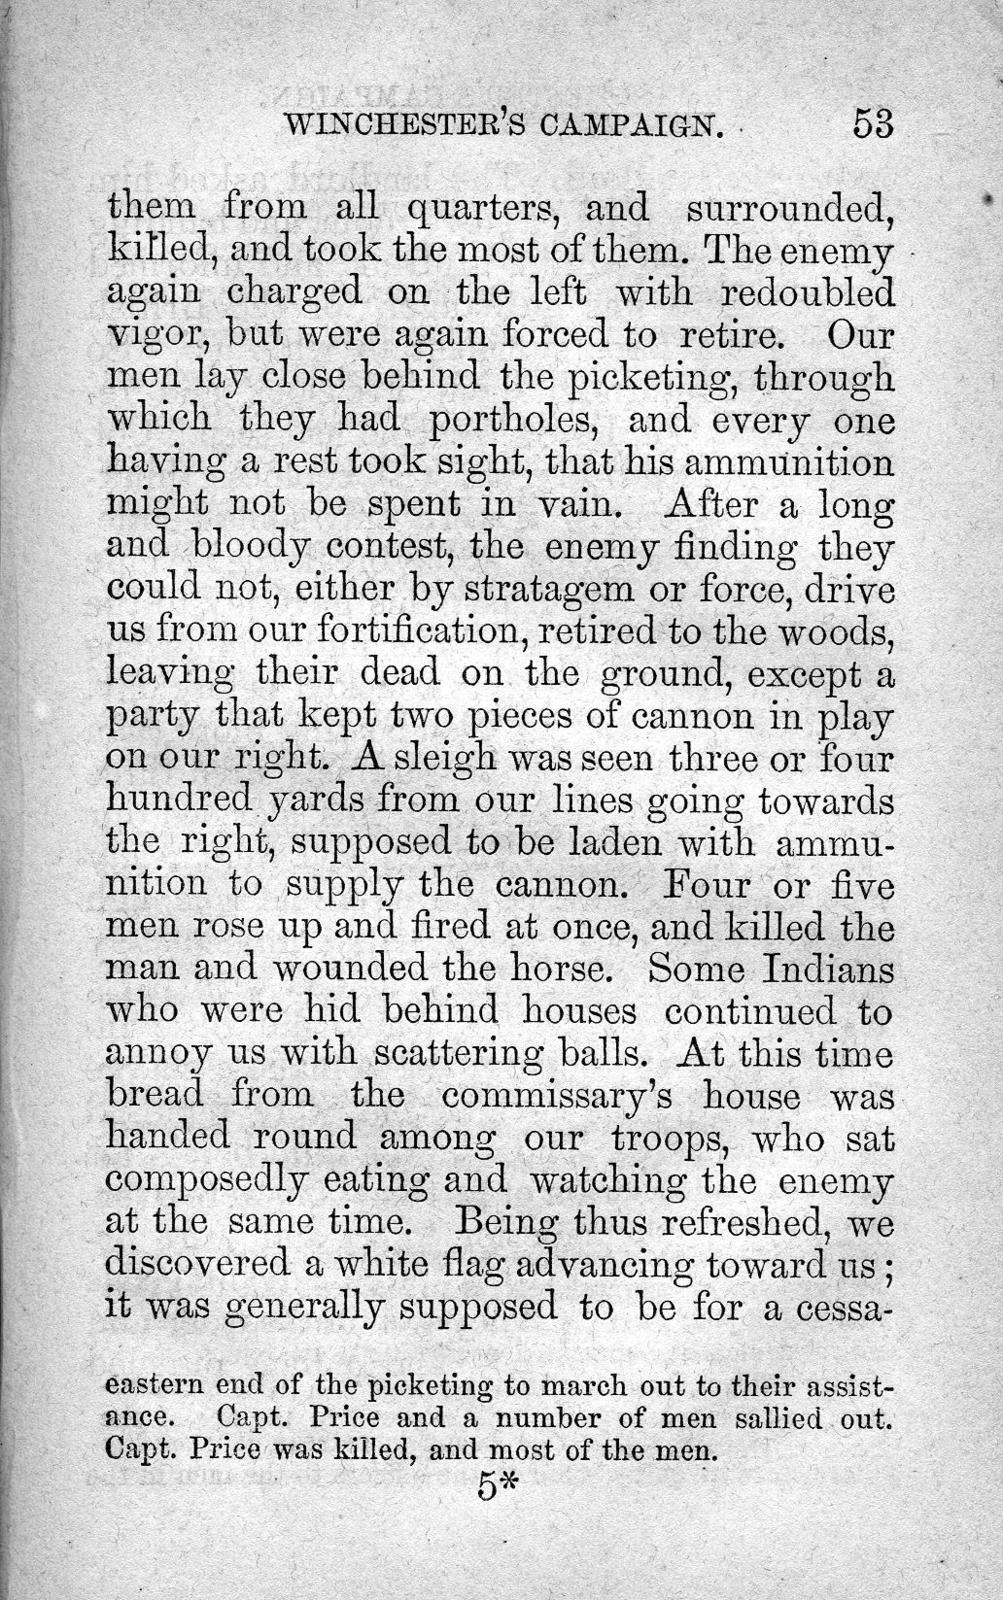 A journal, containing an accurate and interesting account of the hardships, sufferings, battles, defeat, and captivity of those heroic Kentucky volunteers and regulars : commanded by General Winchester, in the years 1812-13.  Also, two narratives by men that were wounded in the battles on the River Raisin and taken captive by the Indians